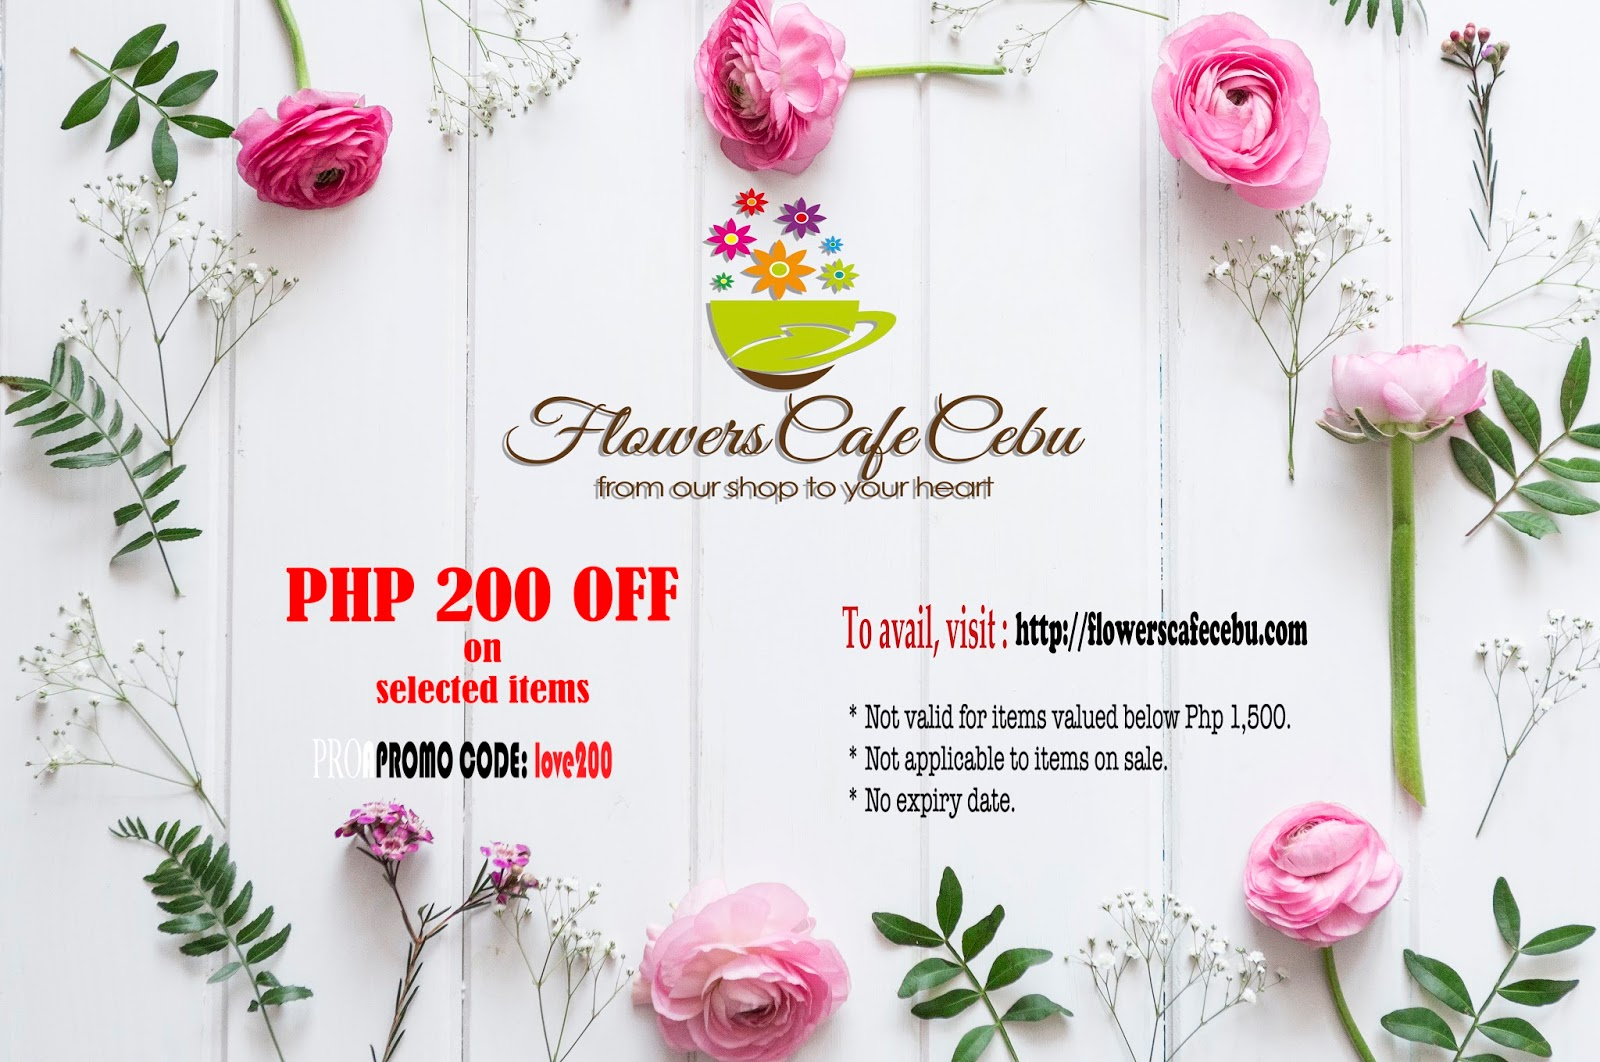 Absolutely, with goodfilezbv.cf coupons! When the web was still in its infancy, ProFlowers set out to provide the freshest flowers available online. Today, our ability to send flowers anywhere is unmatched and so are the great deals we offer such as these ProFlowers Coupons, including free shipping deals.